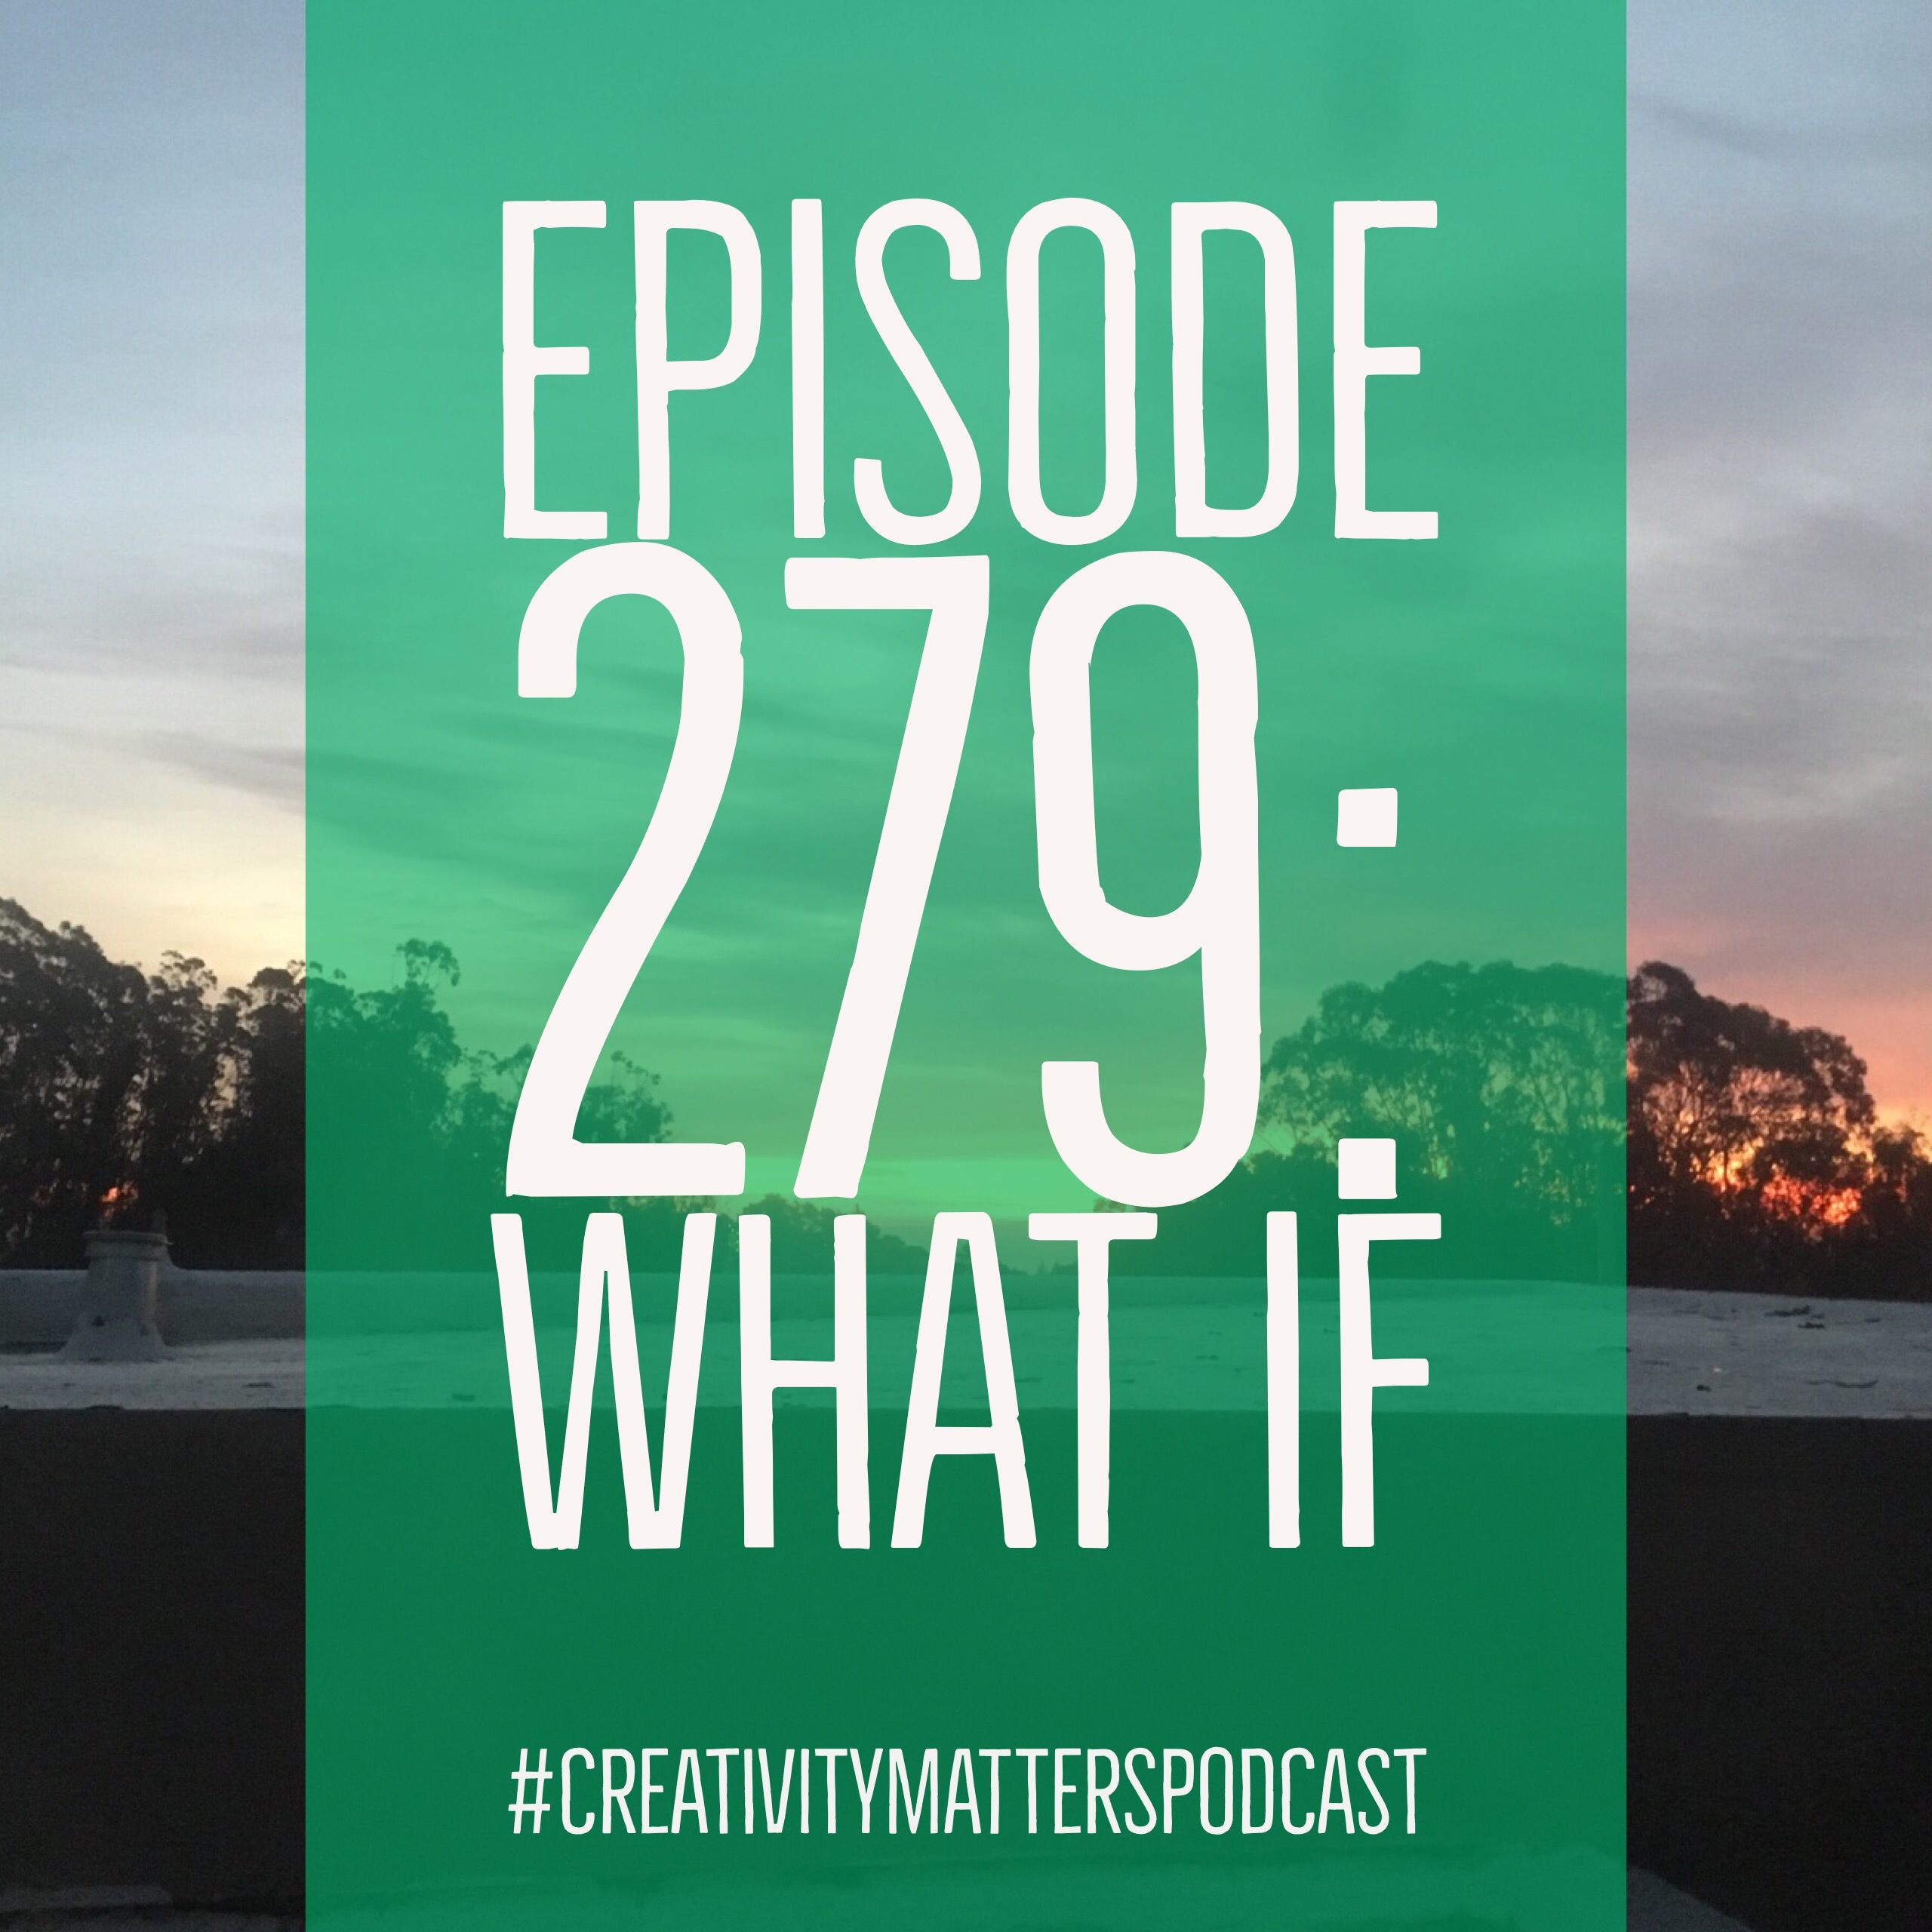 Episode 279: What if